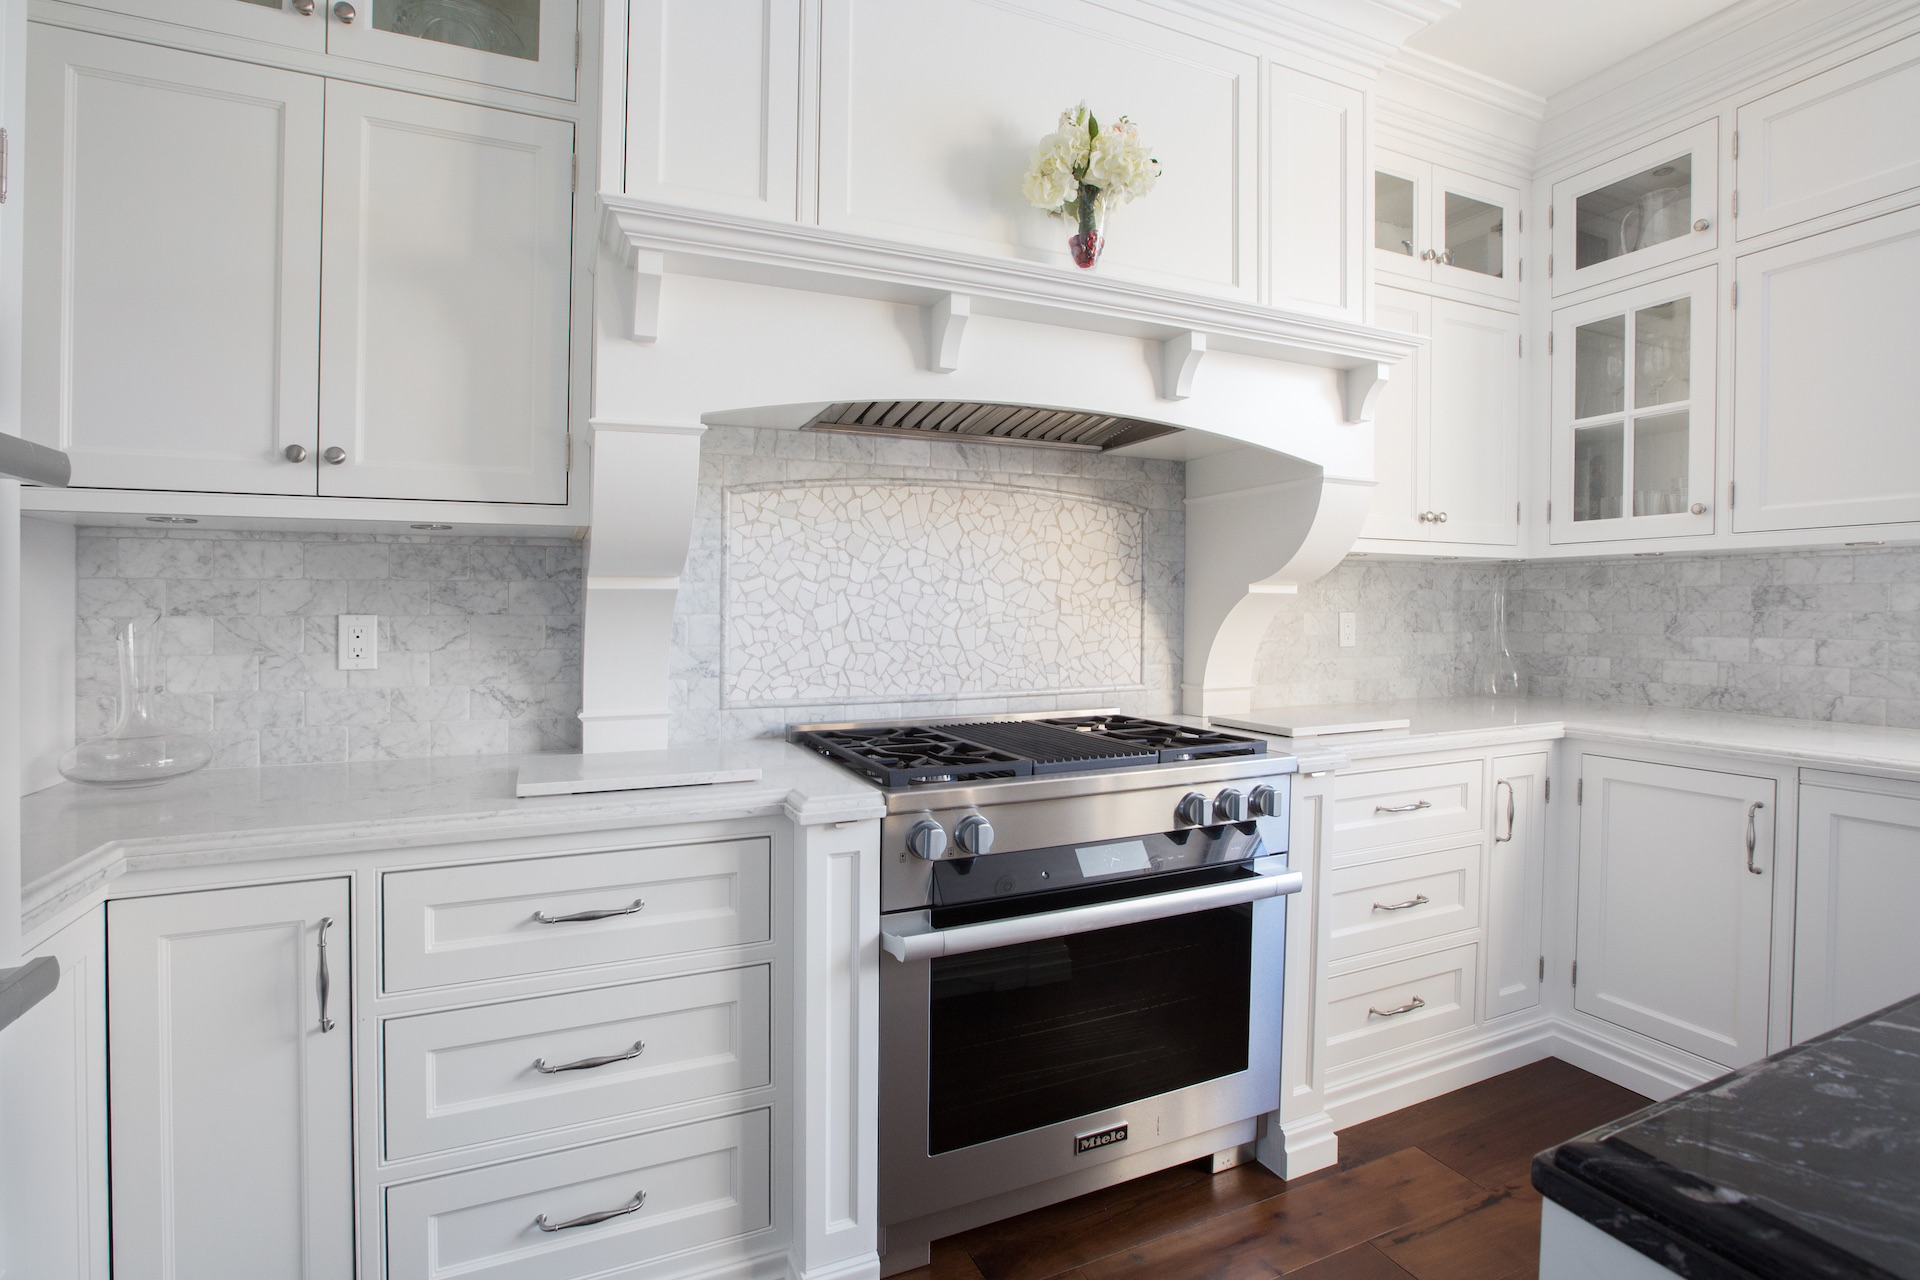 White cabinets with stove and oven